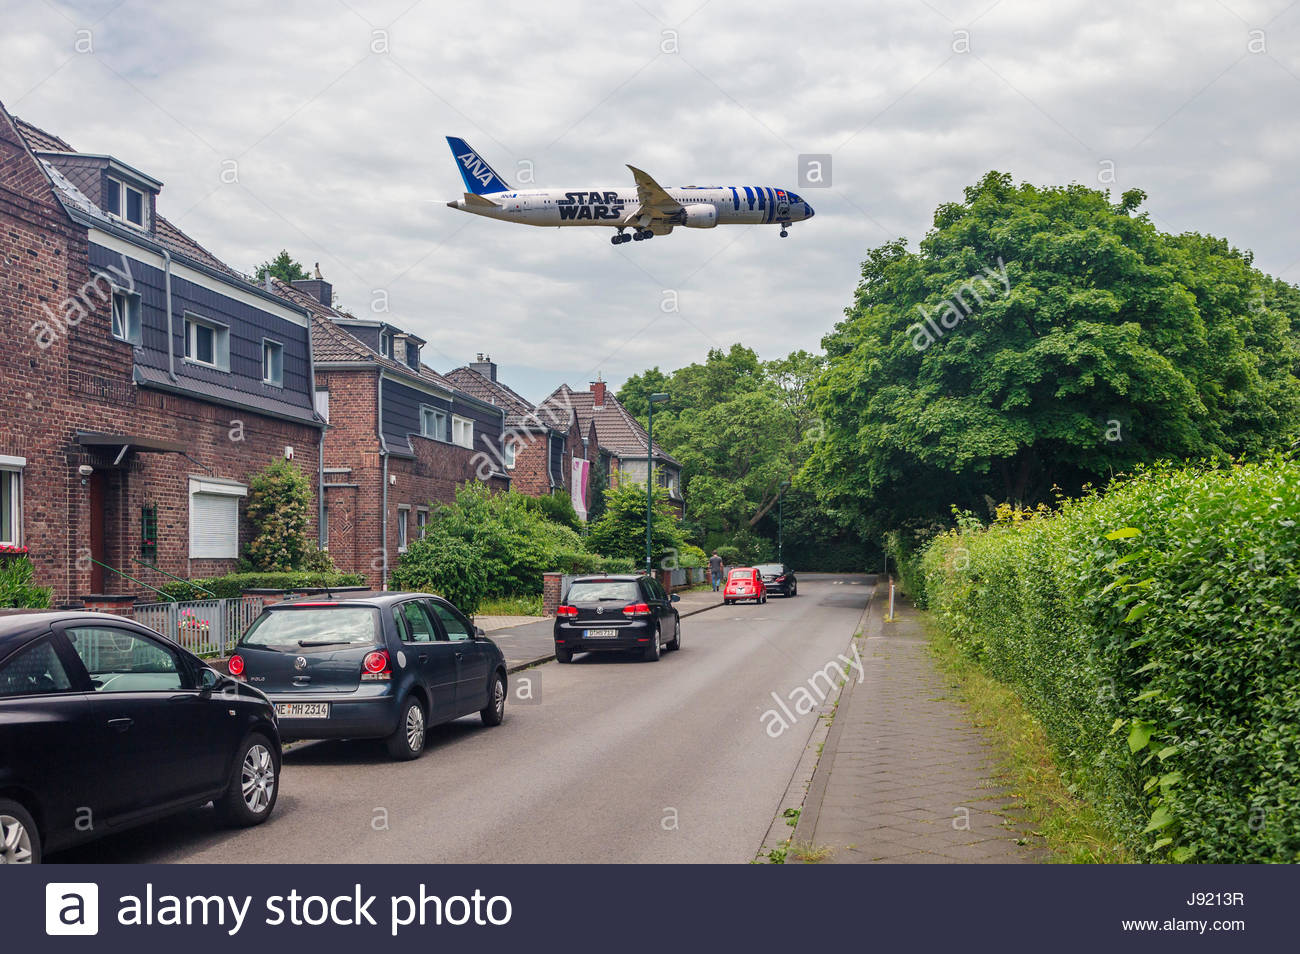 ANA Boeing 787-9 Dreamliner Starwars character R2-D2 livery over suburban residential area suburb housing buildings - Stock Image